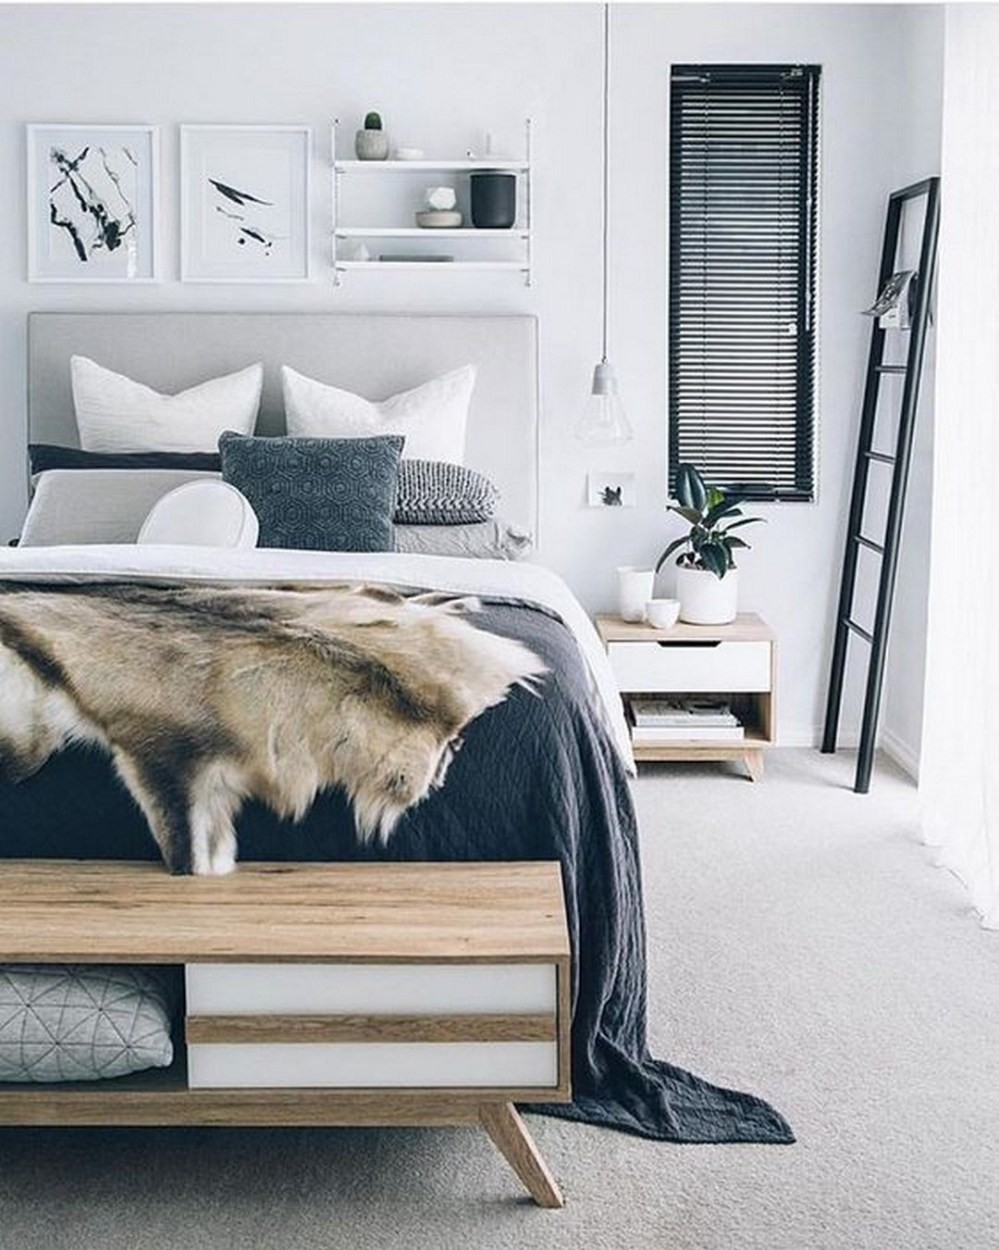 Scandi bedroom.jpg